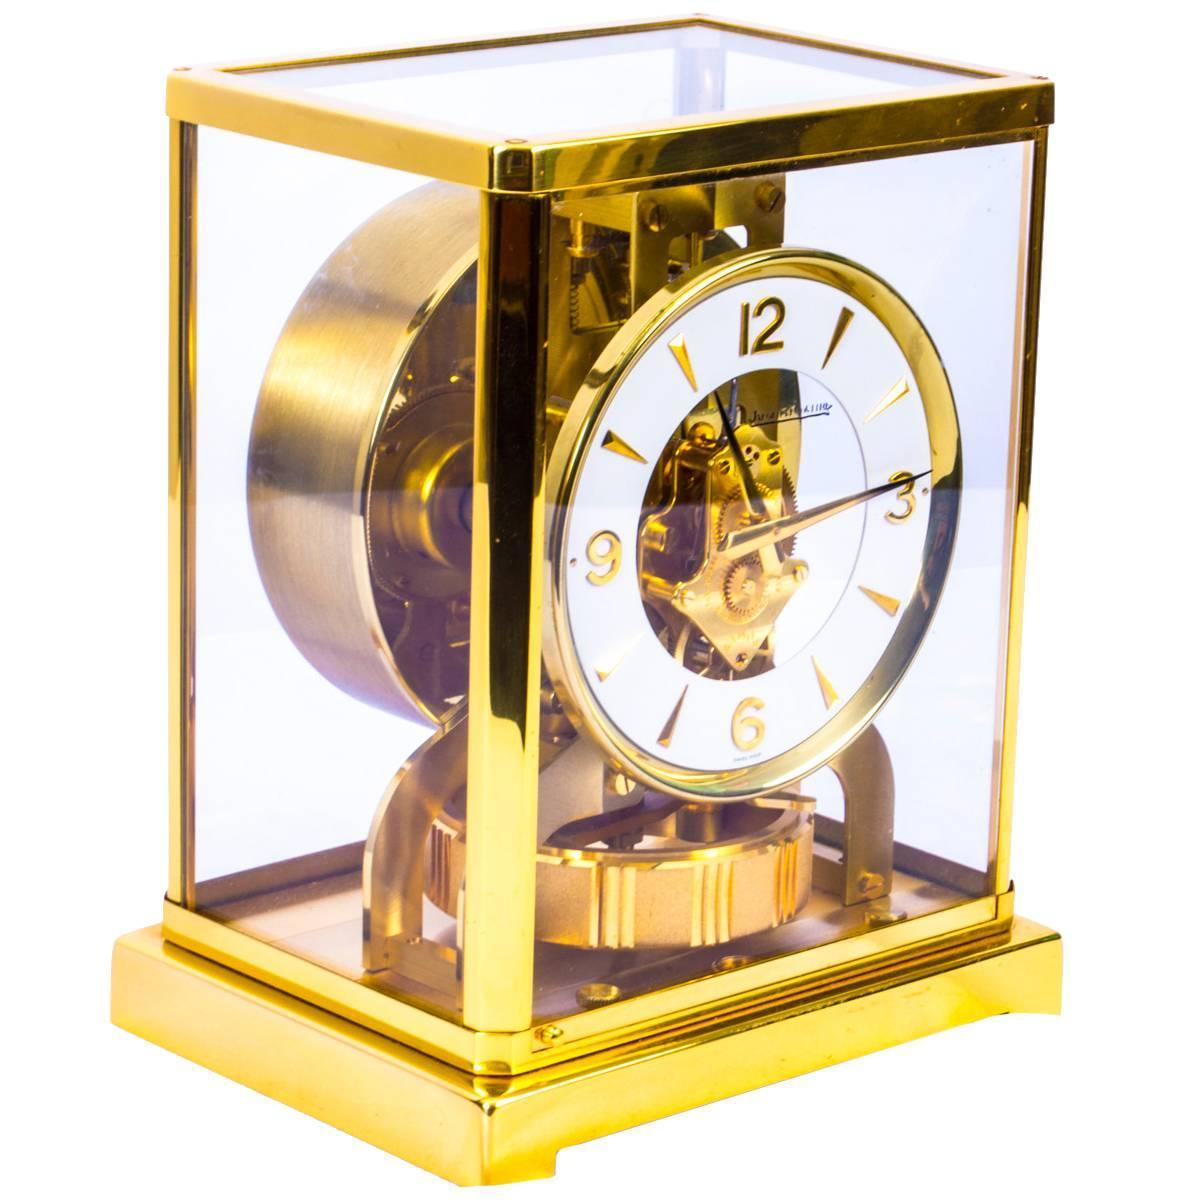 Dating of two Atmos clocks